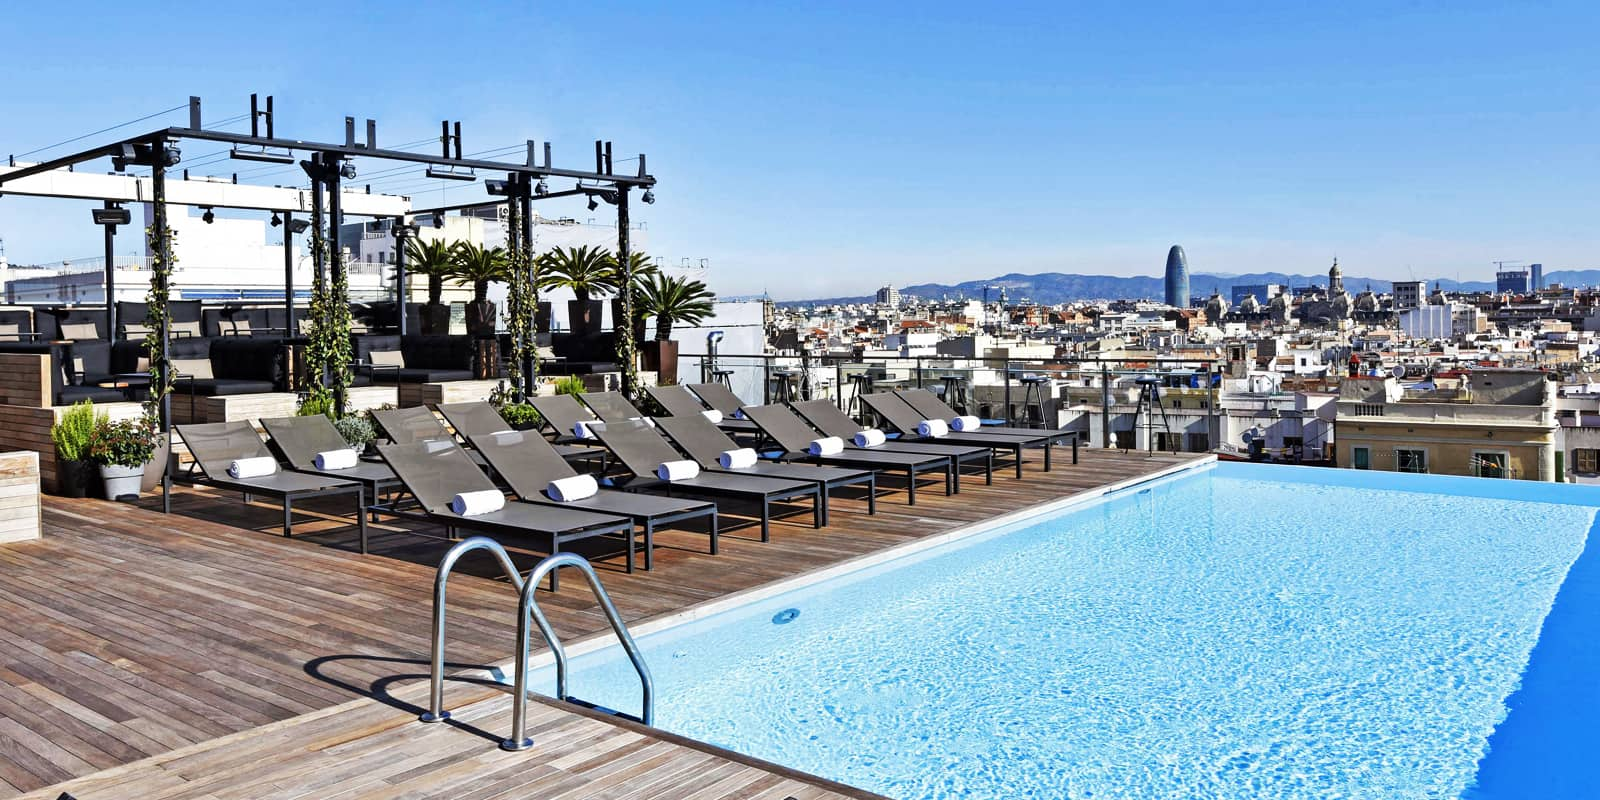 OCOA-TRAVEL-GRAN-HOTEL-CENTRAL-BARCELONA-9